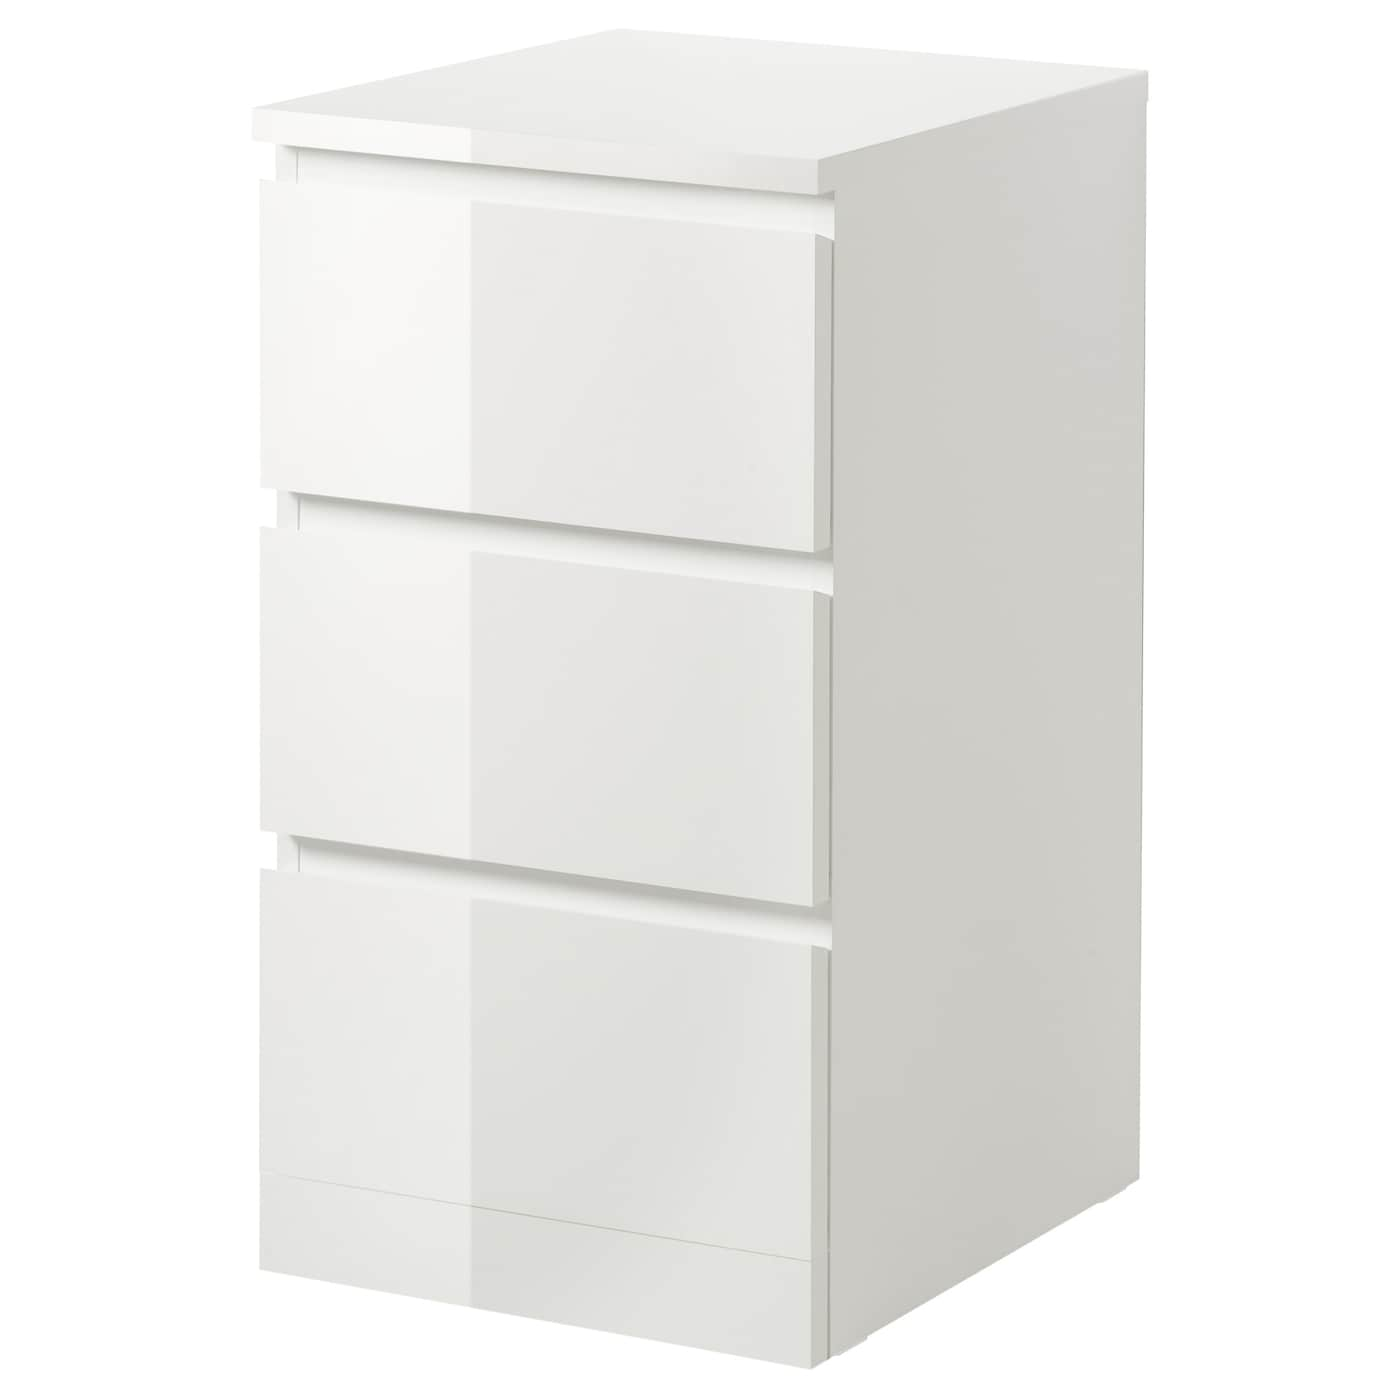 malm chest of 3 drawers high gloss white 40 x 78 cm ikea. Black Bedroom Furniture Sets. Home Design Ideas